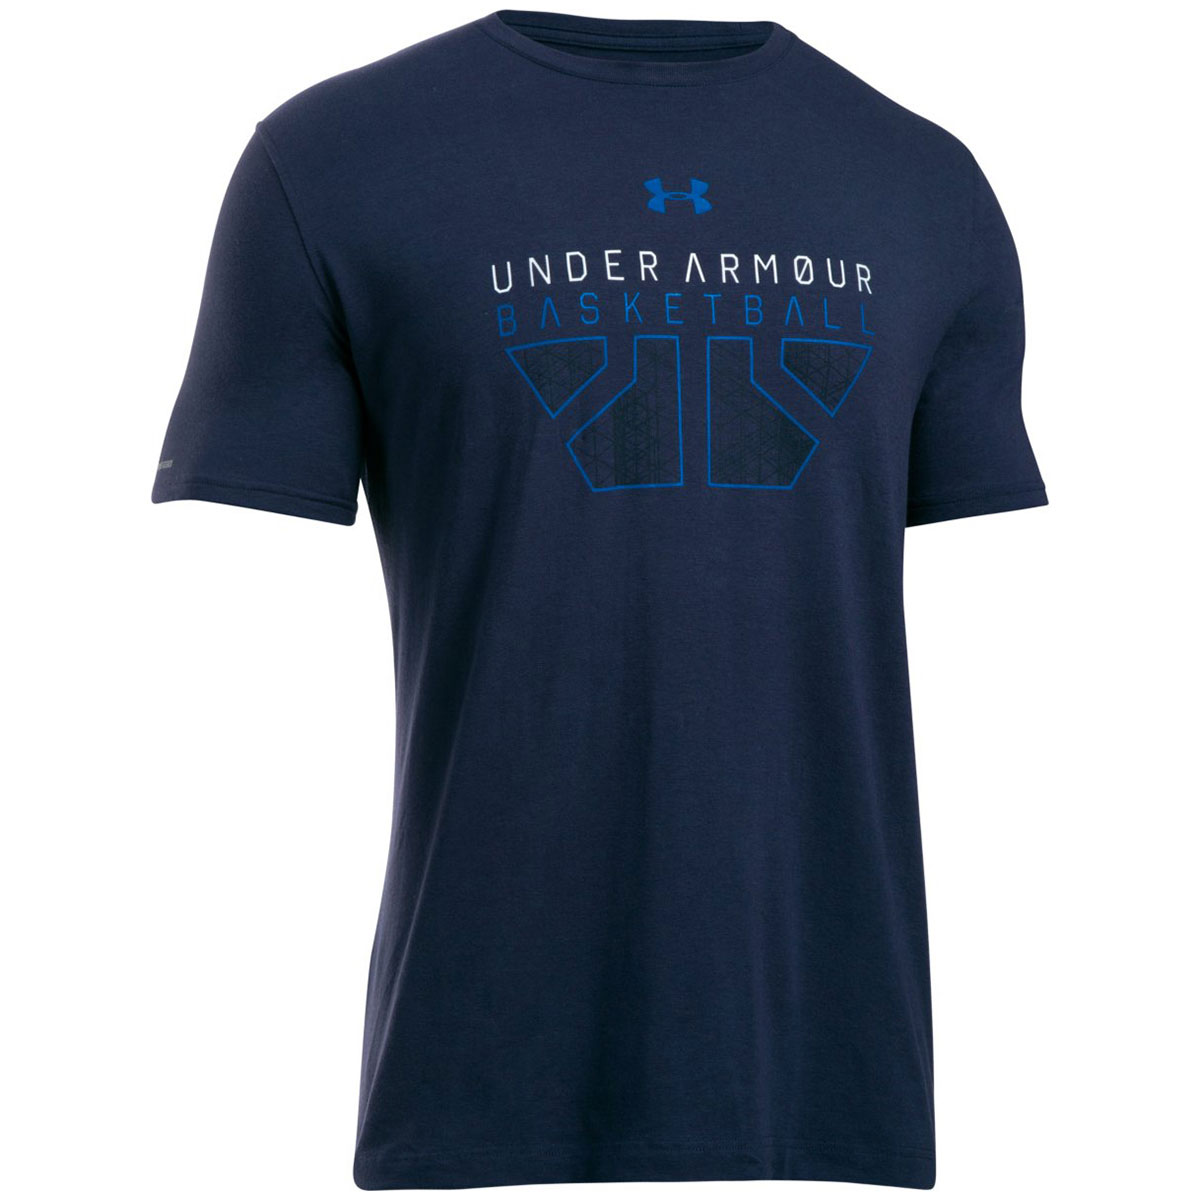 Under Armour 2017 Mens Baseline Ii Graphic Performance